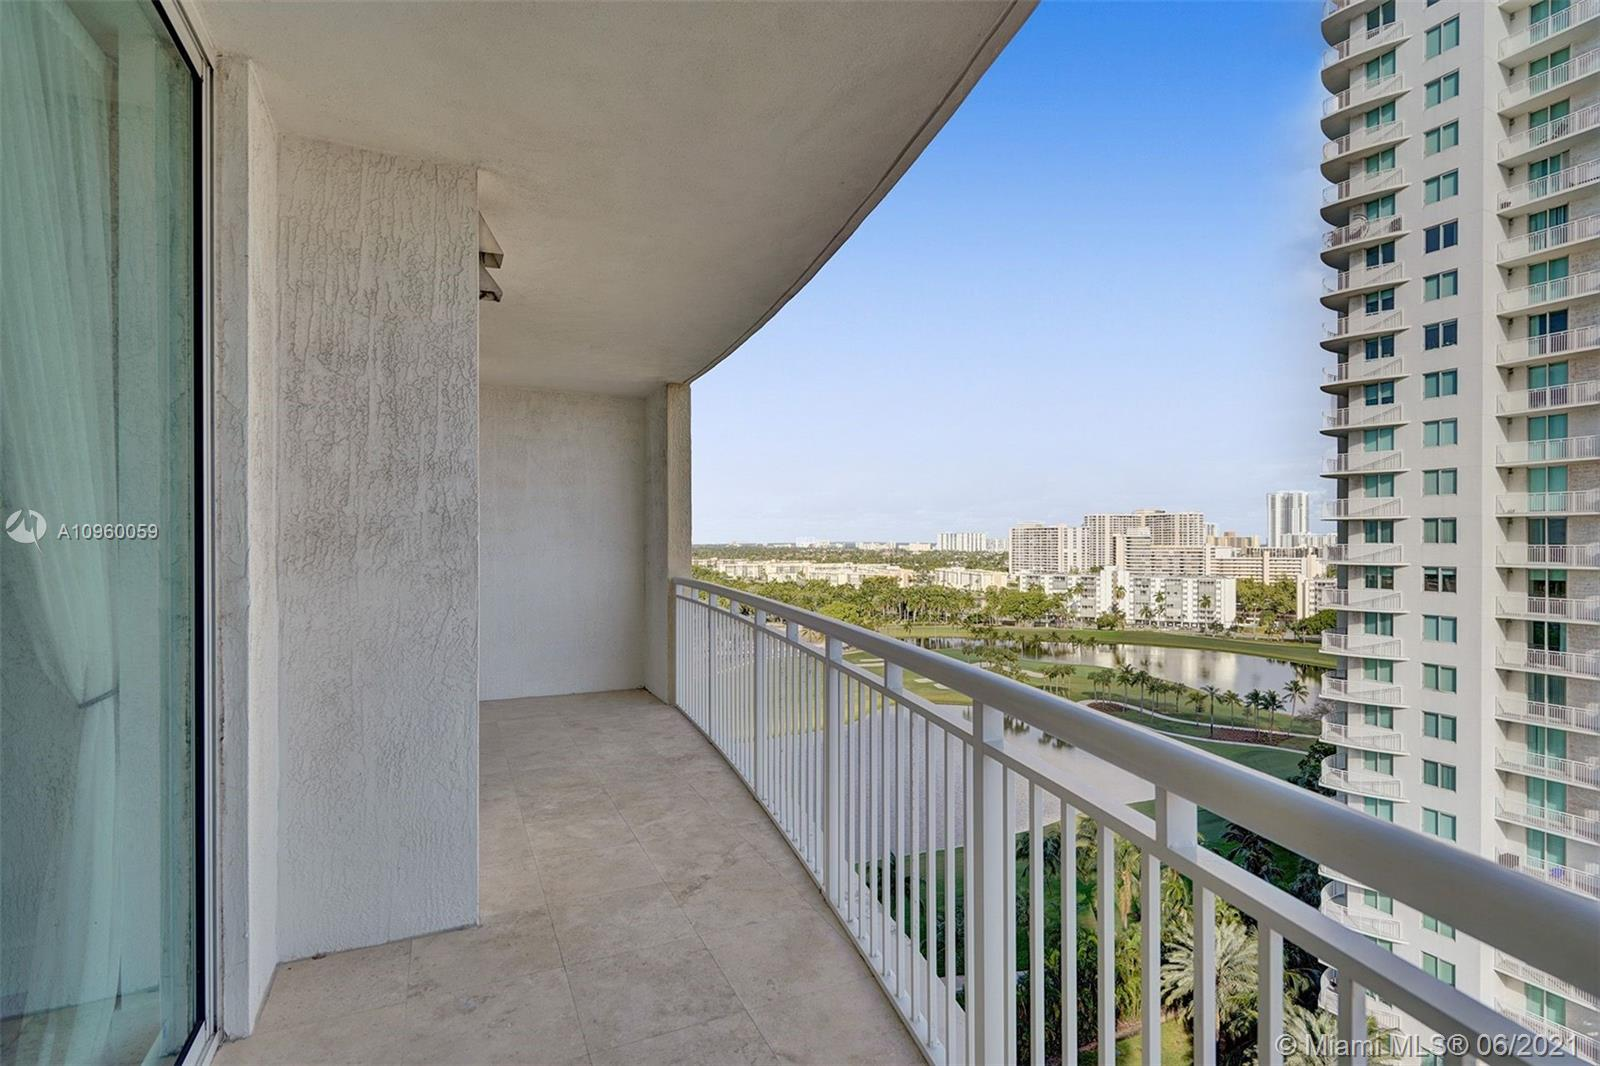 Photo of 1745 Hallandale Beach Blvd #1405W, Hallandale Beach, Florida, 33009 -